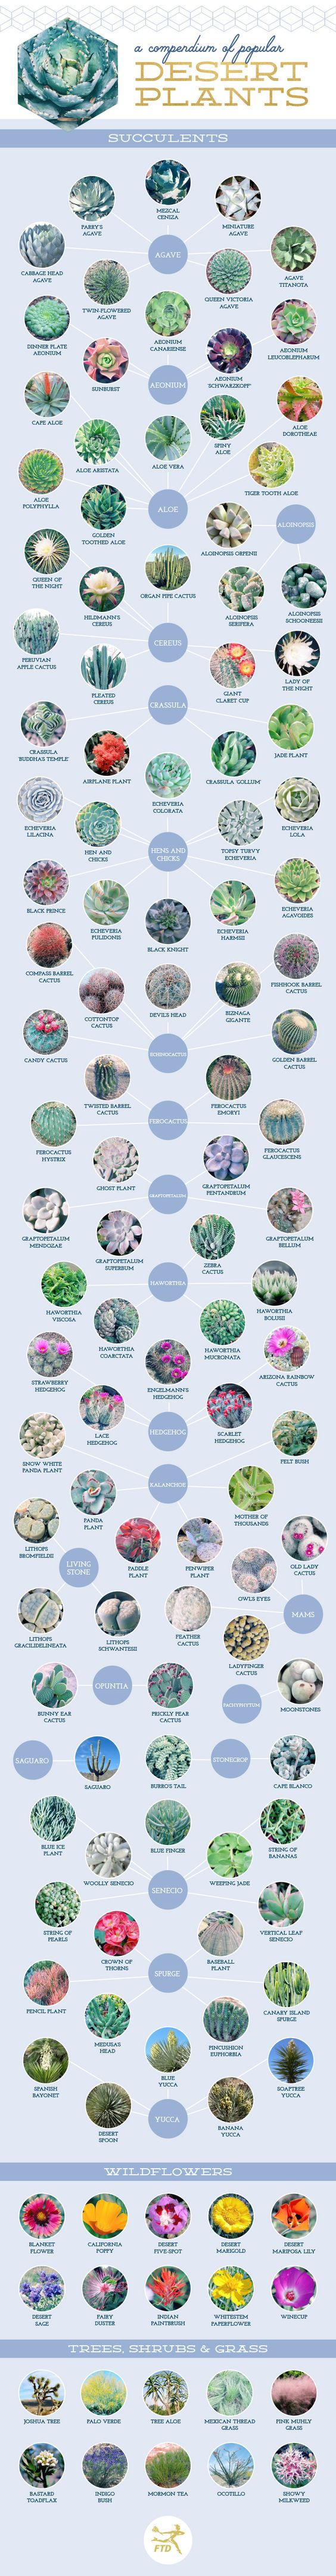 Don't know the name of your succulent or cactus plant? This great Compendium of 127 Stunning Desert Plants and Succulents may help. Image shared with permission of ftd.com. For help on propagating succulents please visit thegardeningcook.com